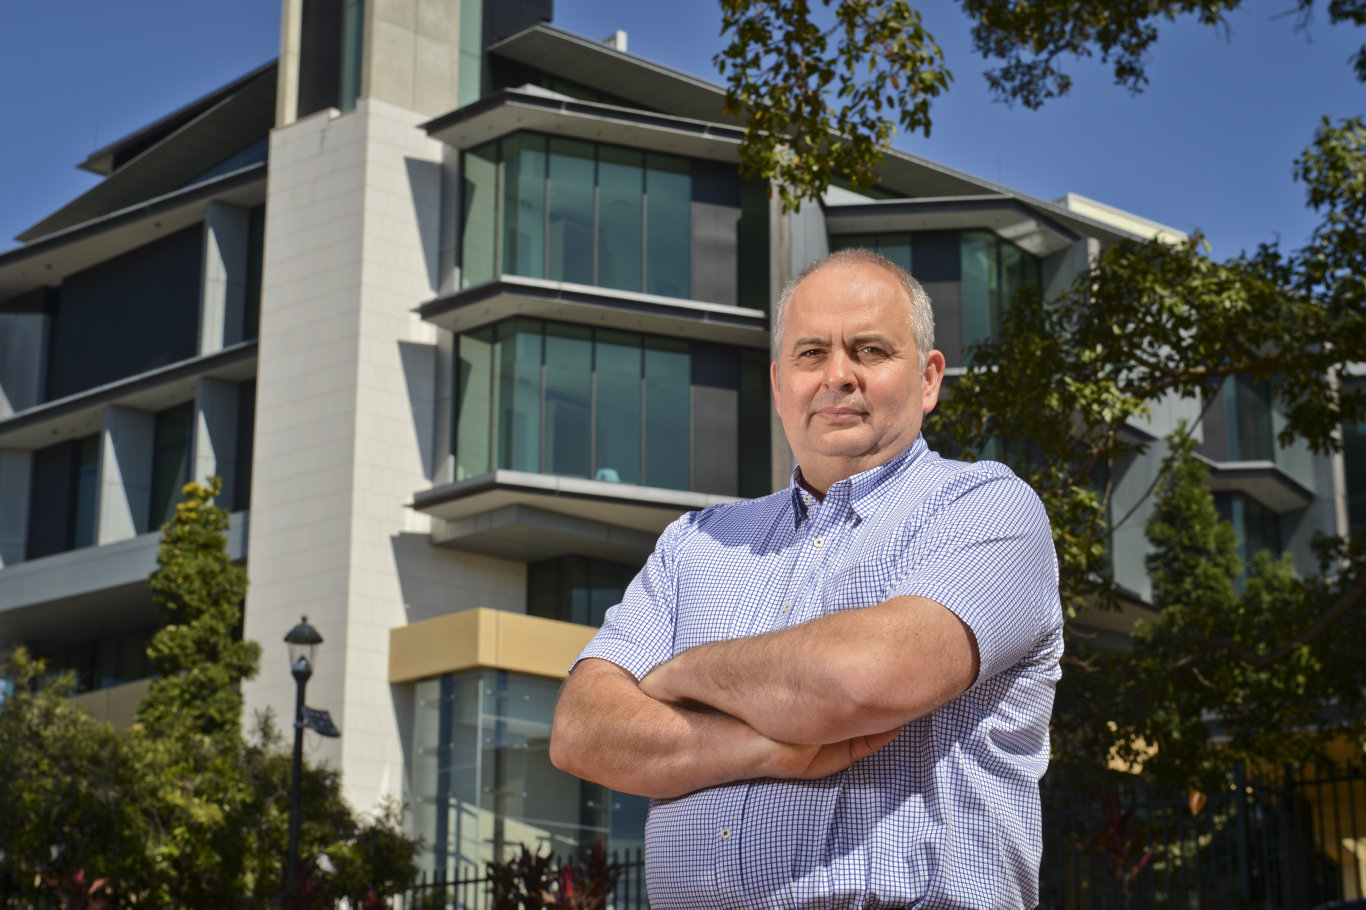 James Long has turned the old TAFE building into Limestone 88, which houses Pumpyard, McNamara and Associates lawyers, Ungerman Brothers, Moore Personal Training and Dovetails restaurant. He's a vocal player on the business scene.of 88 Limestone, James Long says cars from the court are parking illegally in their car park.